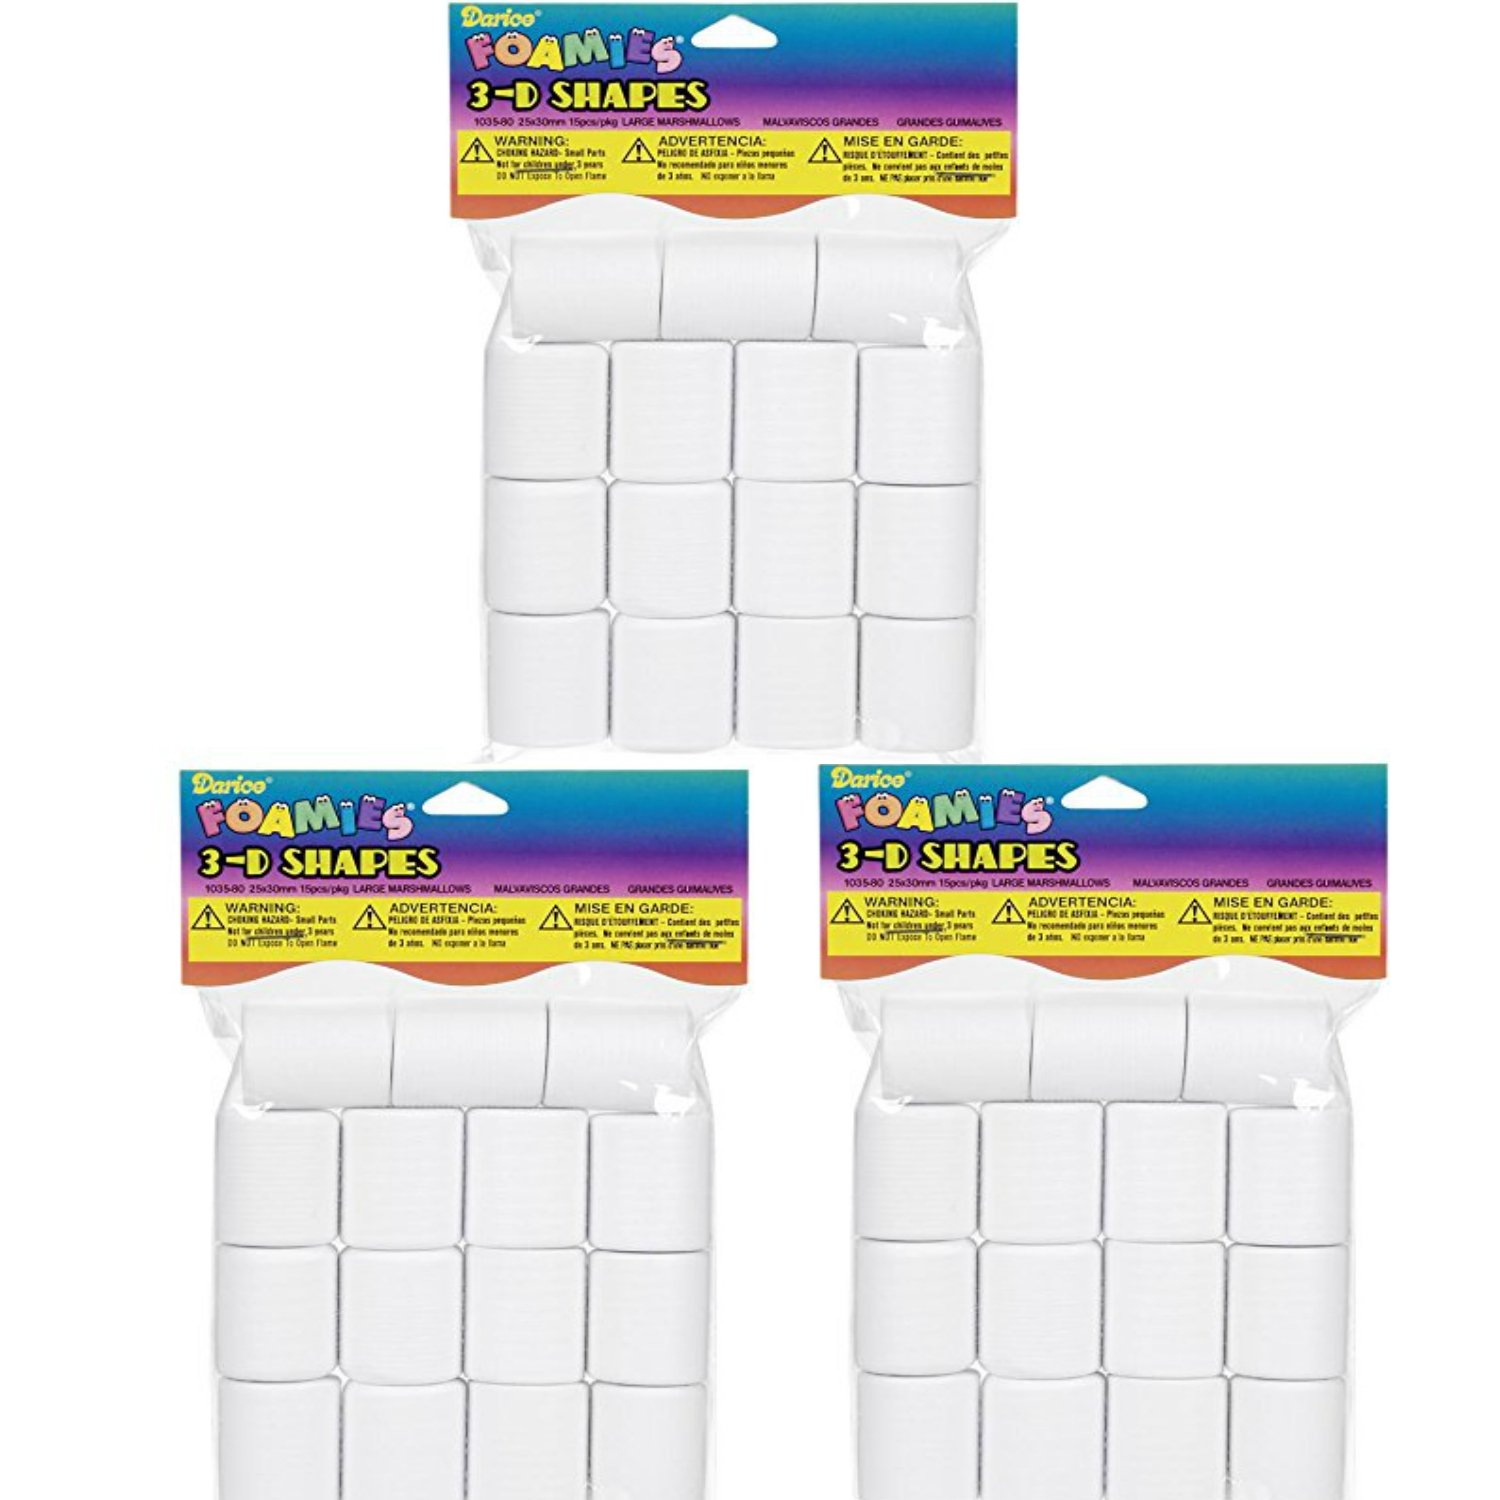 Darice 15-Piece Foam Marshmallow Shapes 3 Pack 25mm by 30mm